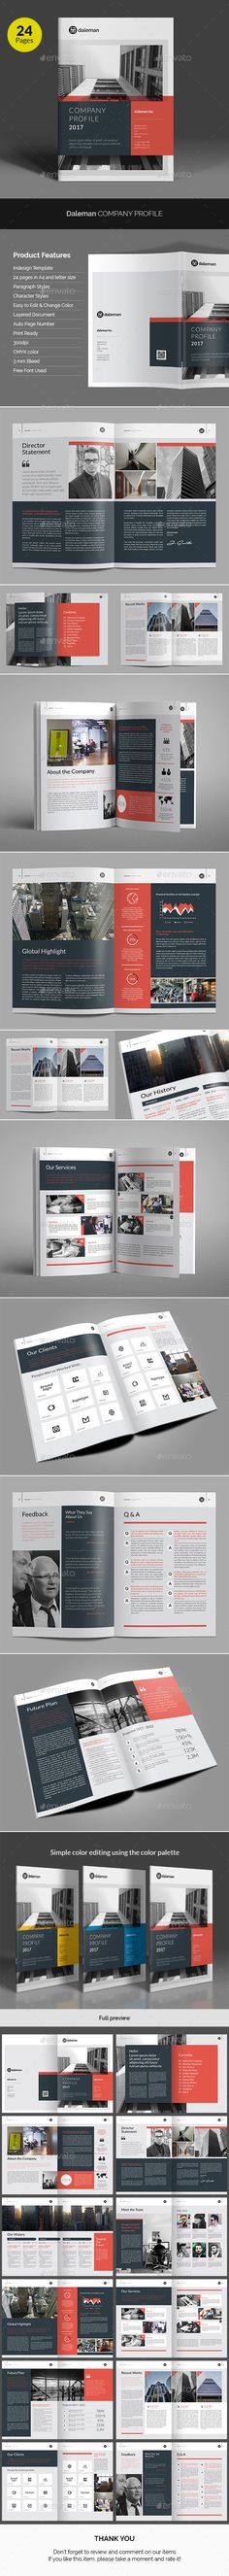 Daleman Company Profile - InDesign Template • Only available here ➝ http://graphicriver.net/item/daleman-company-profile/16883962?ref=pxcr